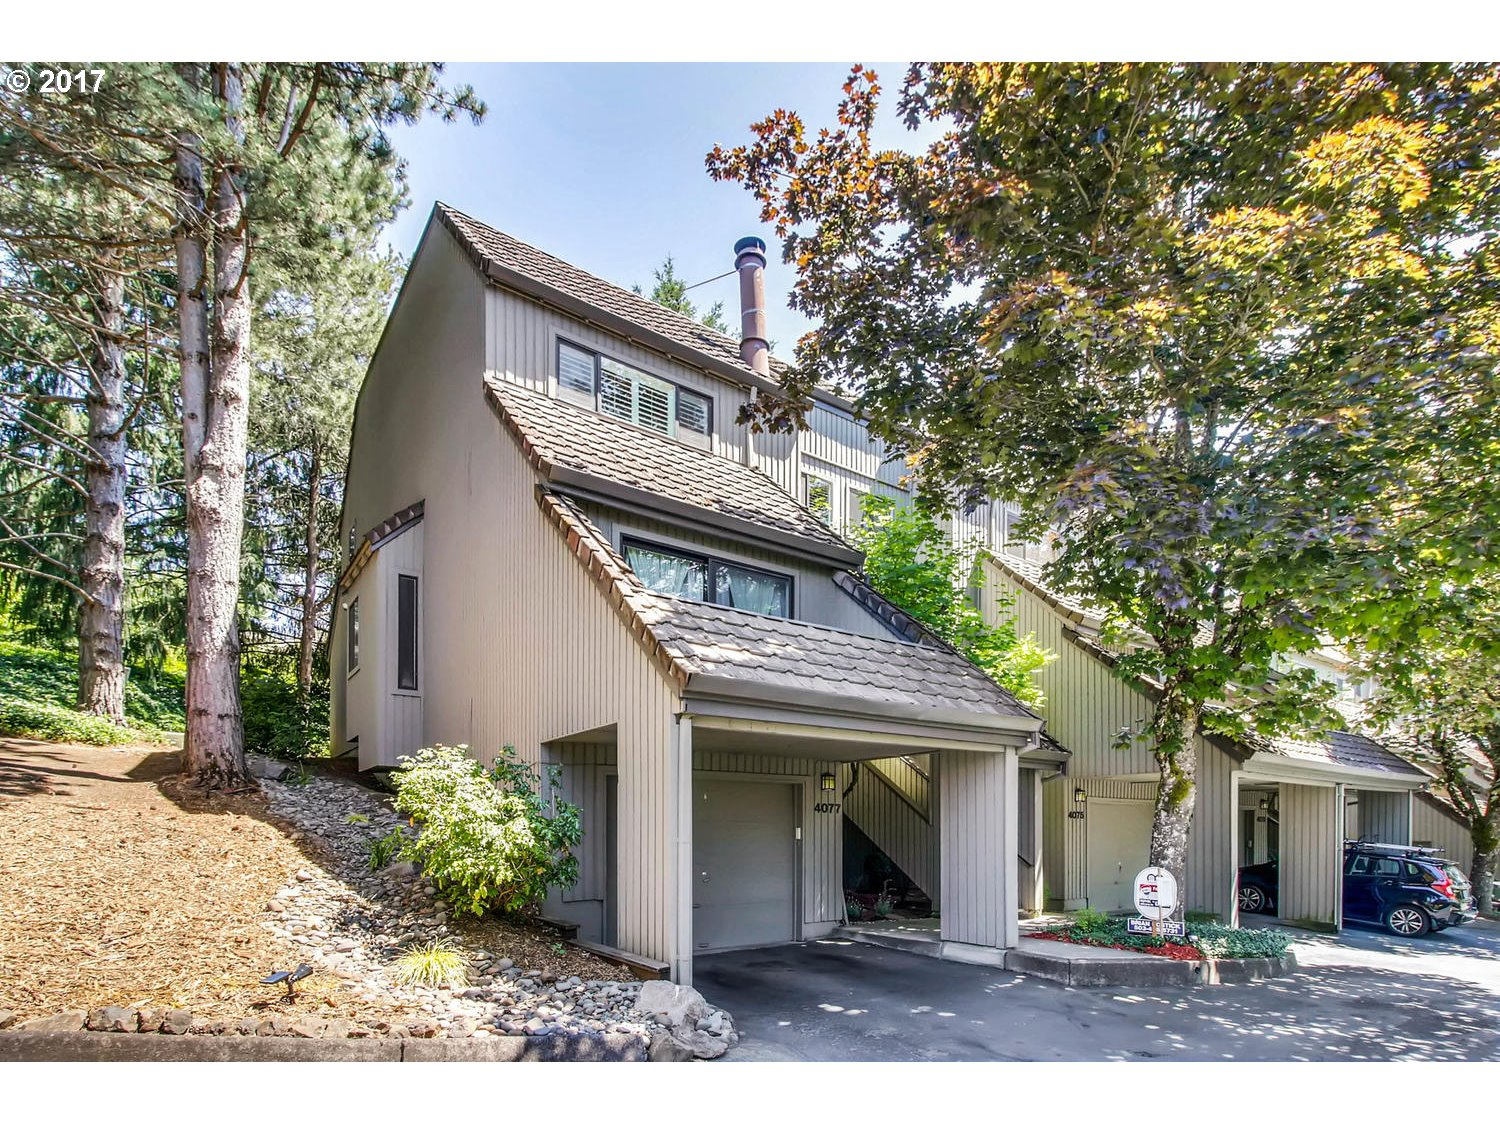 4077 JEFFERSON PKWY, Lake Oswego, OR 97035